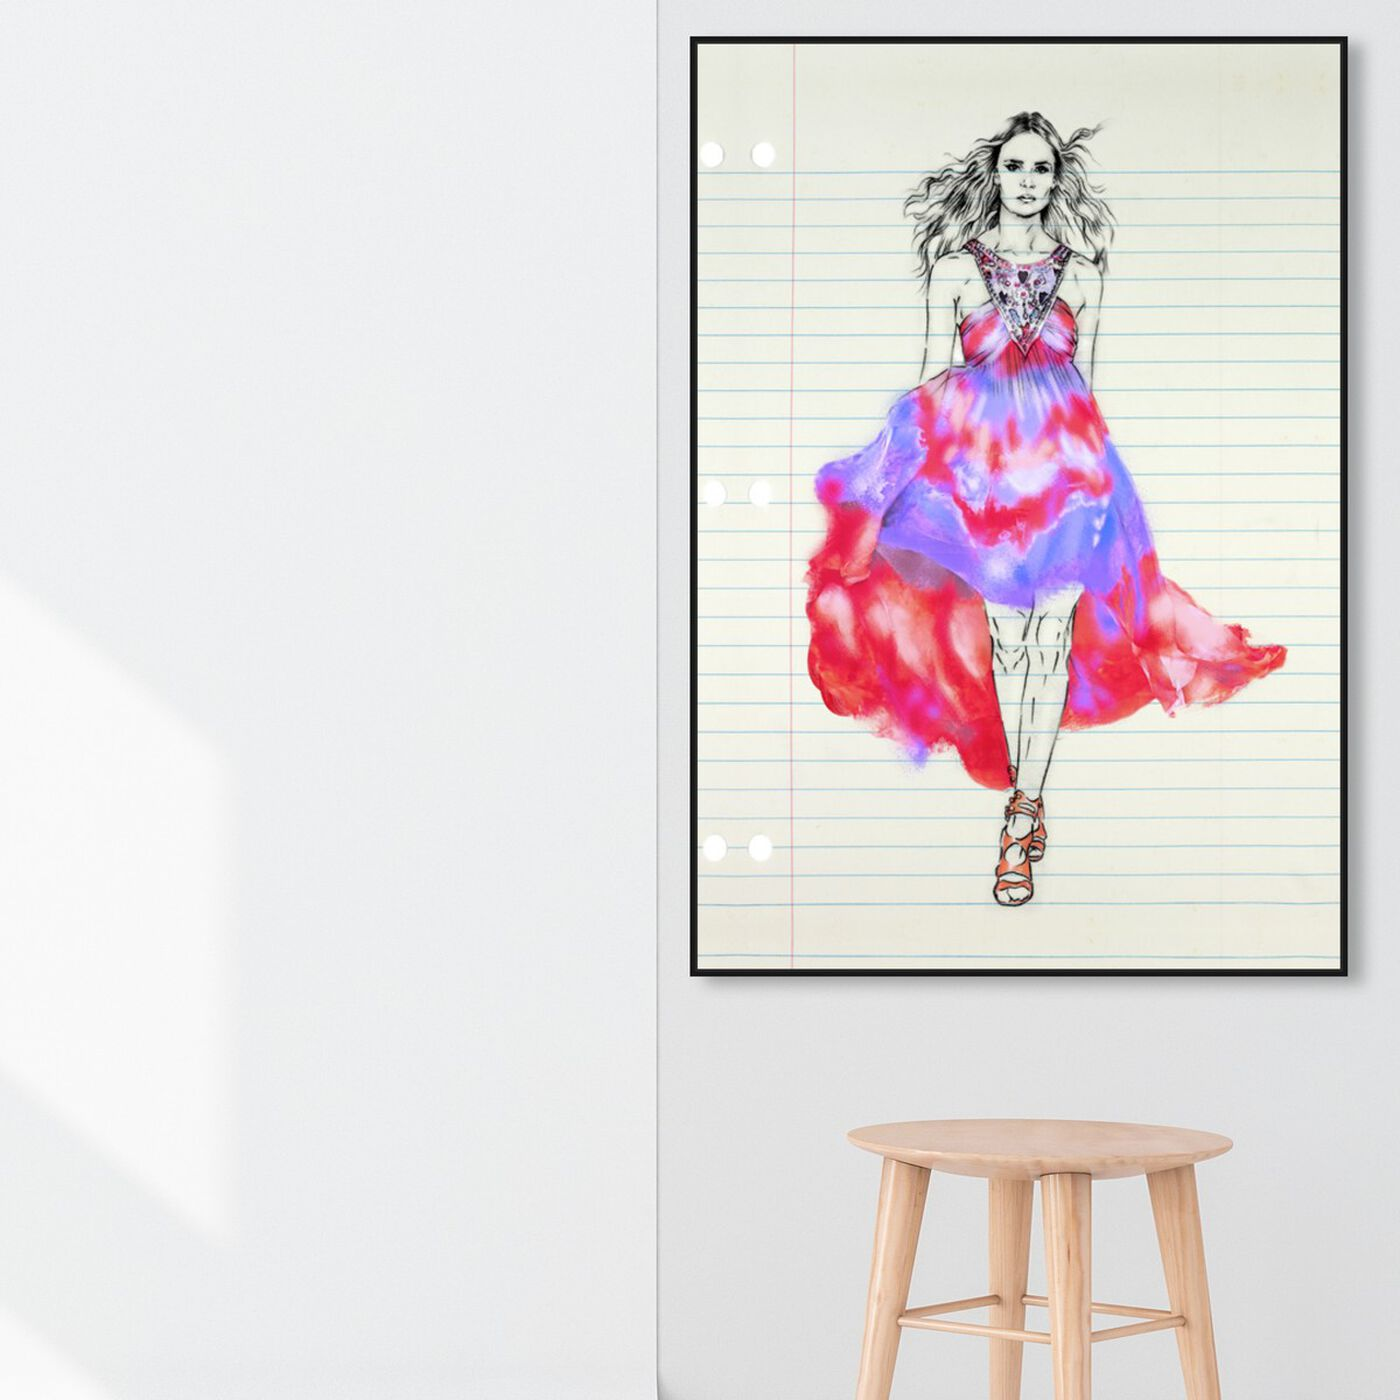 Hanging view of Fashion Illustration 1 featuring fashion and glam and dress art.